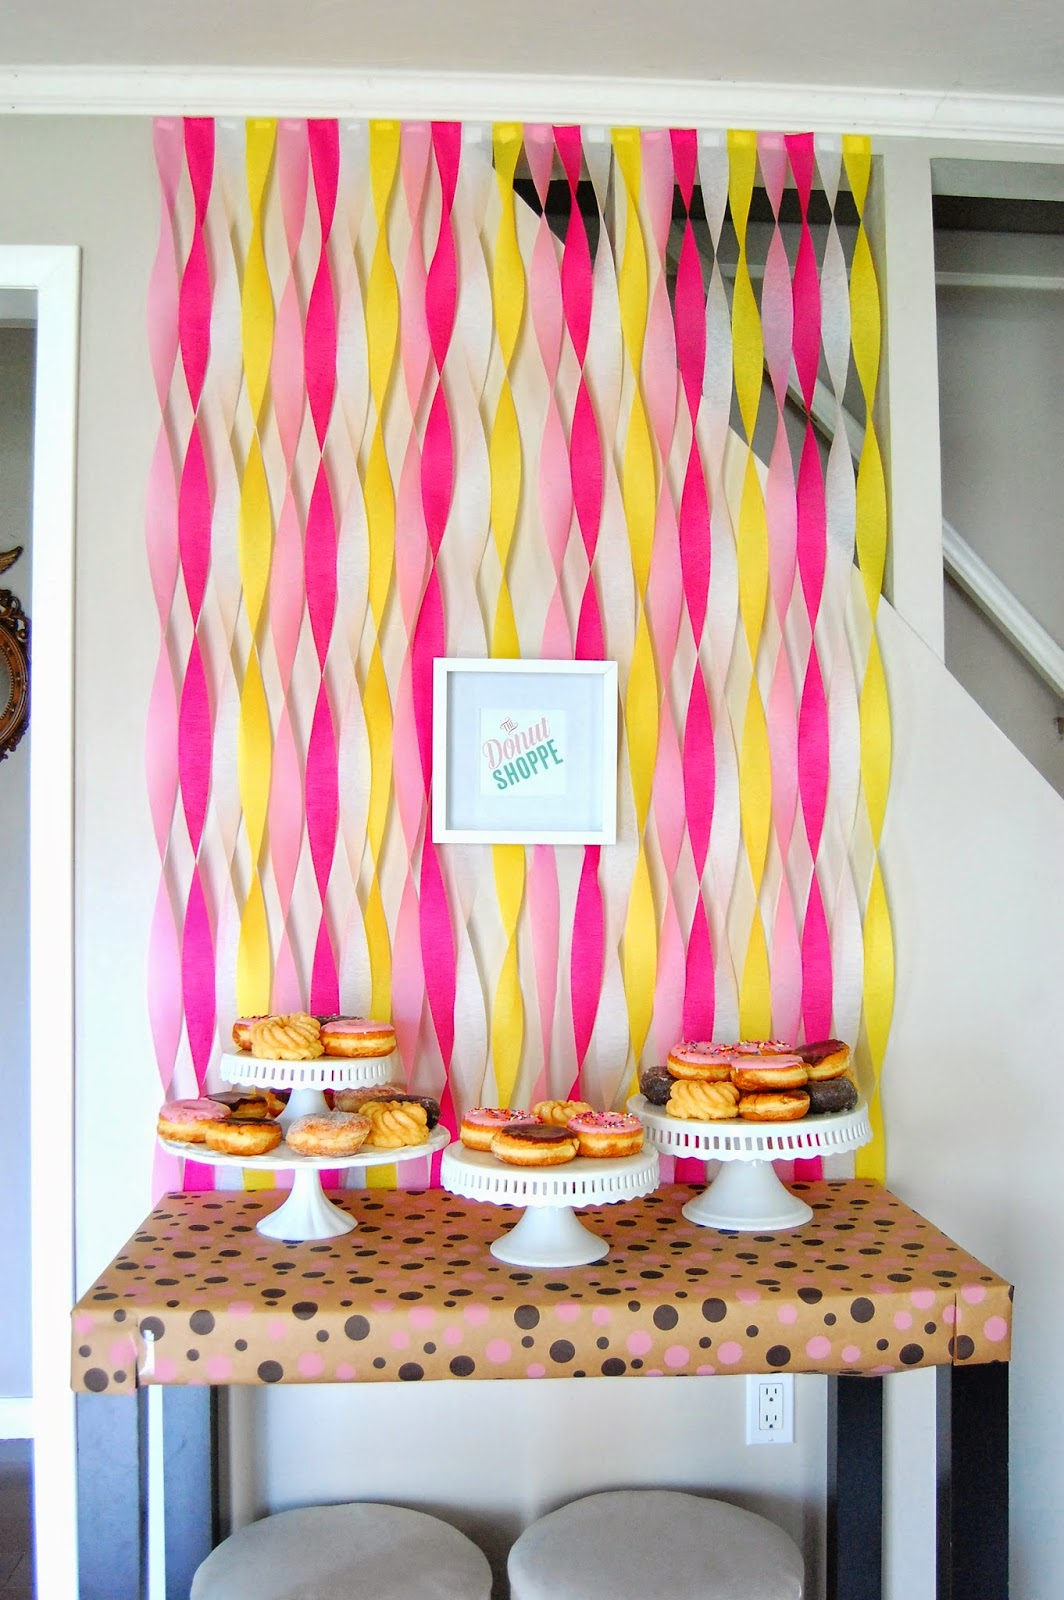 Liddy B. and me: Super Simple Streamer Wall Decoration